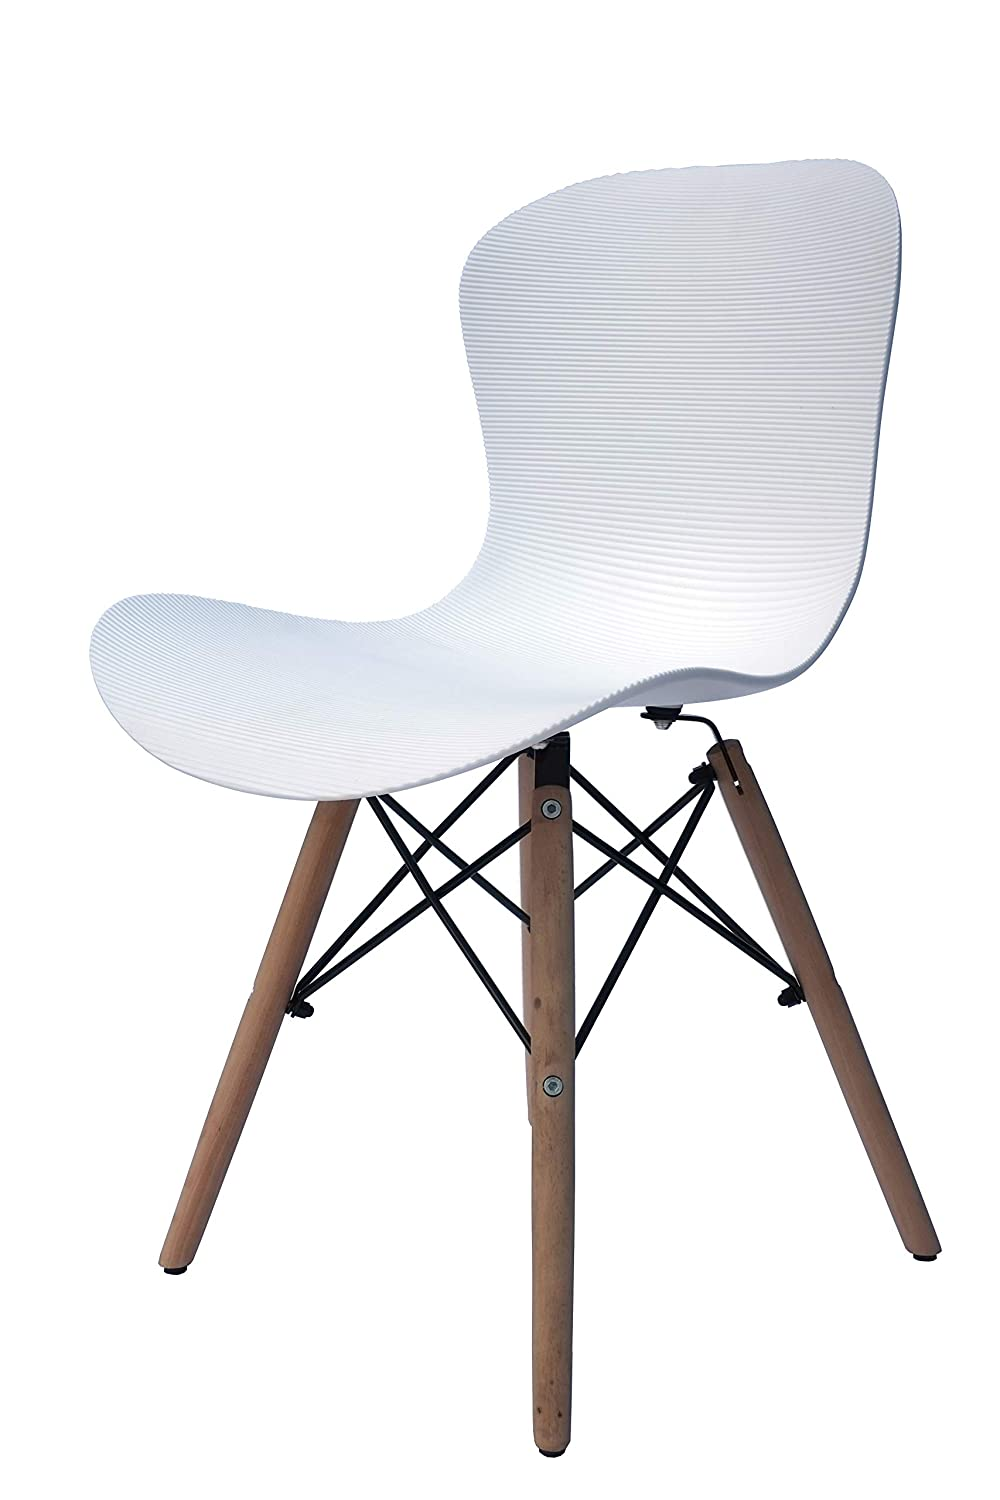 Ribbed White Inspirer Studio® Set of 6 New 17 inch SeatDepth Eames Style Side Chair with Natural Wood Legs Eiffel Dining Room Chair Lounge Chair Eiffel Legged Base Molded Plastic Seat Shell Top Side Chairs (Ribbed Black)